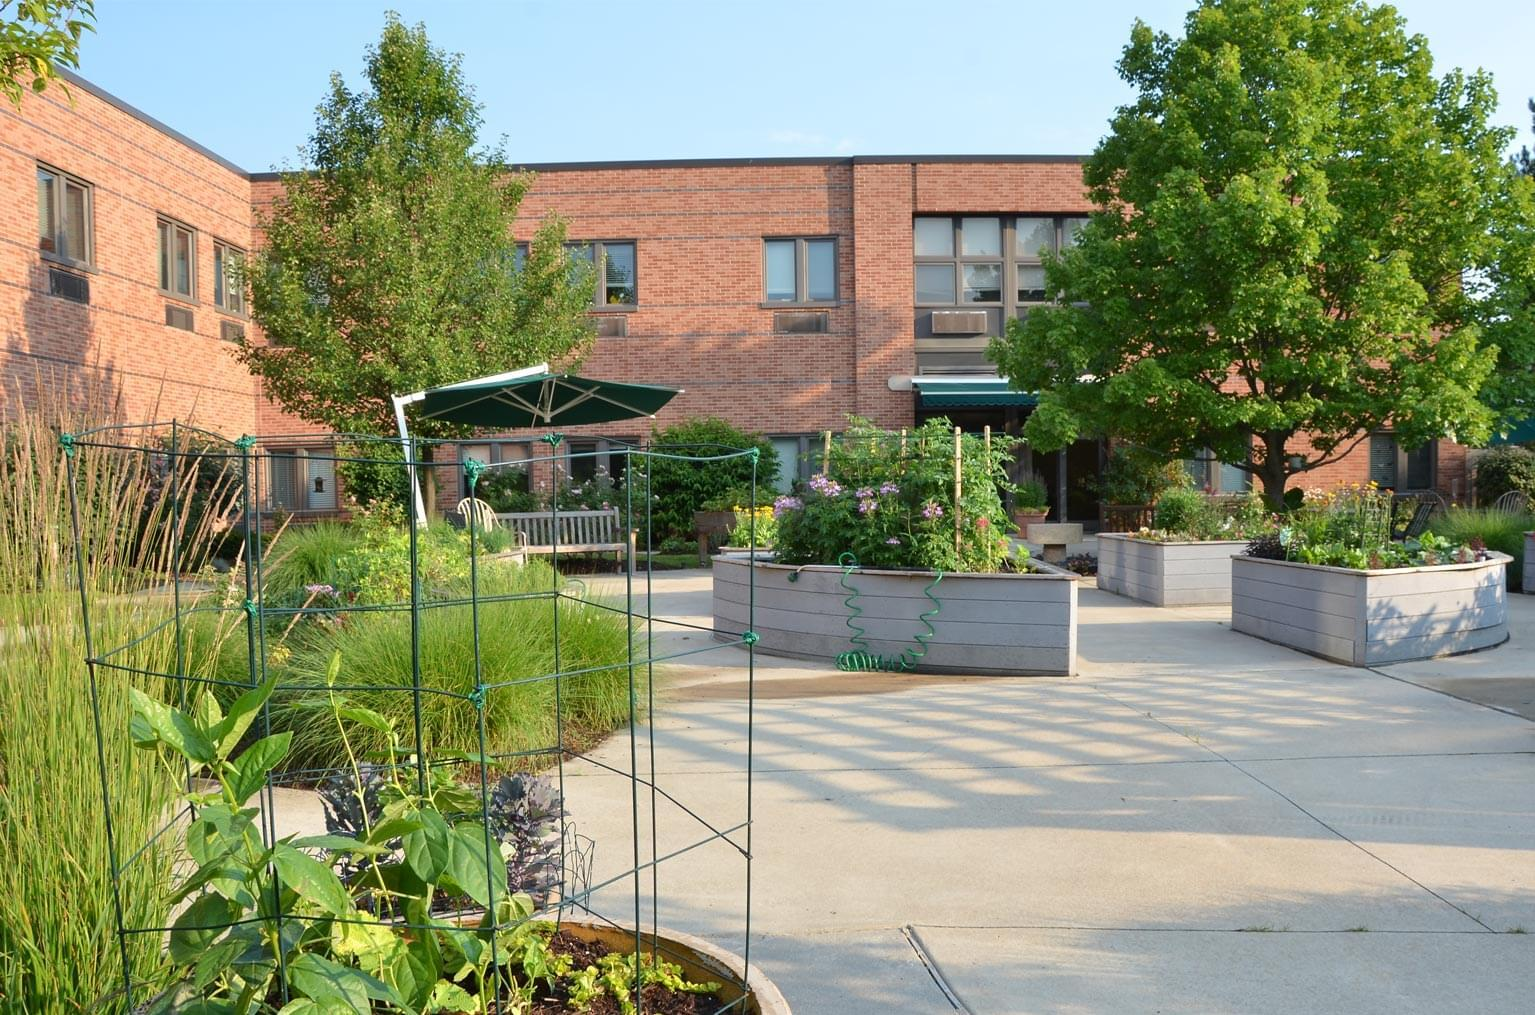 Photo of Glacier Hills, Assisted Living, Nursing Home, Independent Living, CCRC, Ann Arbor, MI 4